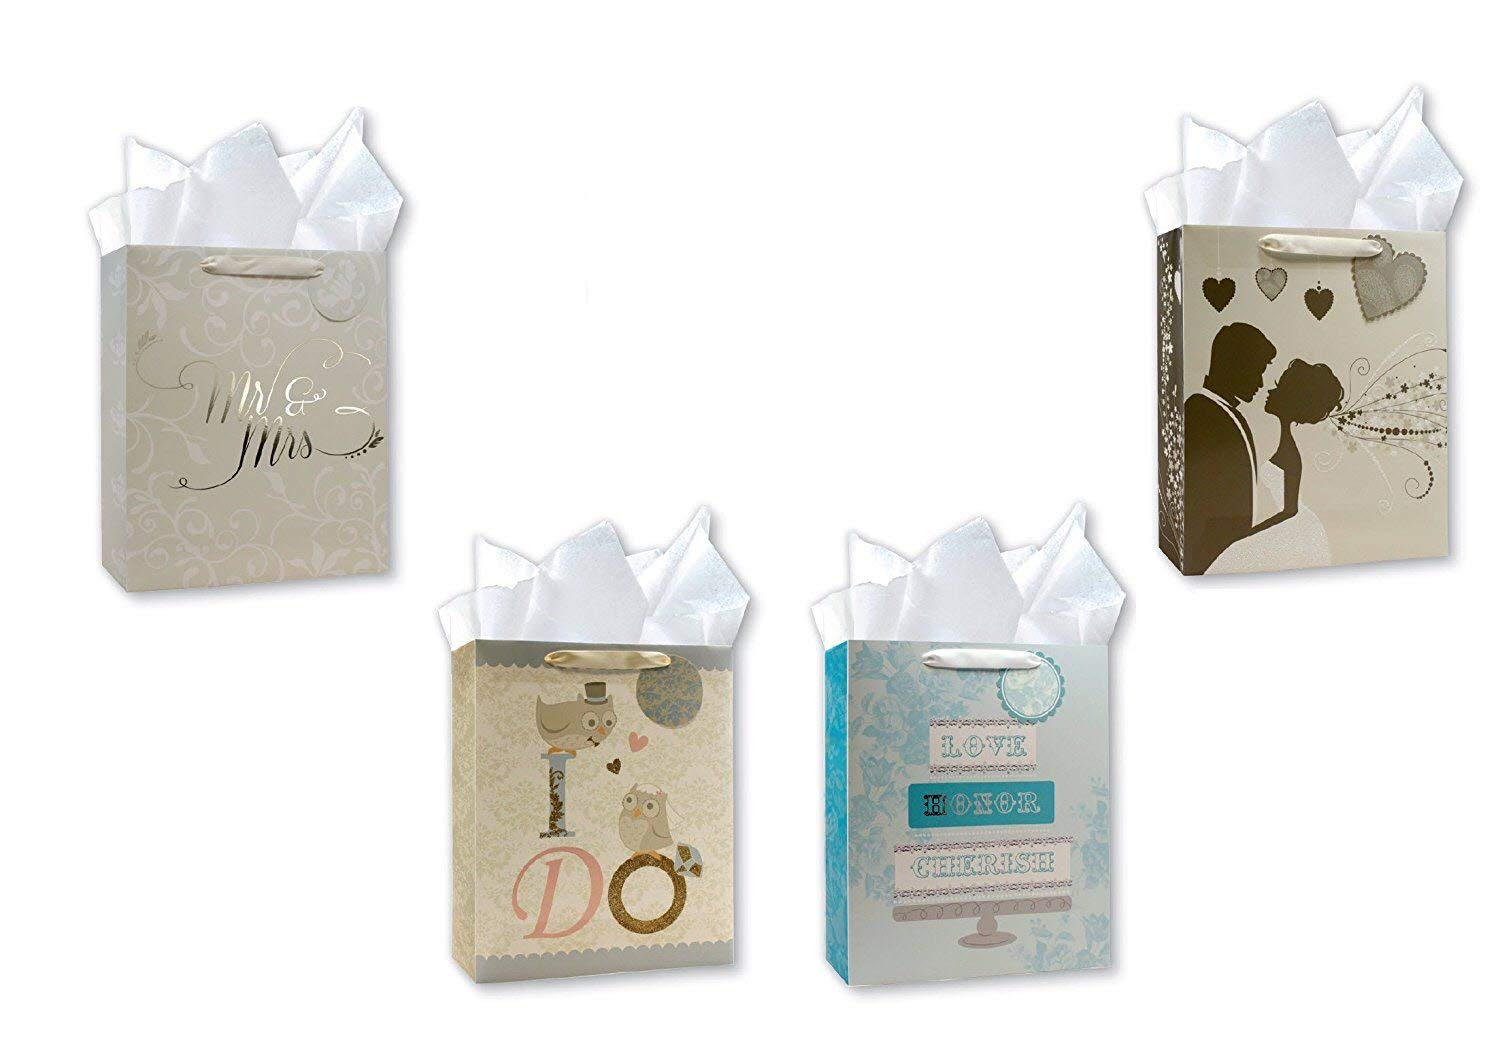 Wedding Gift Bags Set of 4 Large Wedding Gift Bags w/ 4 Elegant Designs Embellished with Iridescent & Gold Glitter and Beautiful Silver & Gold Foil Finishes. Also Includes Tissue Paper